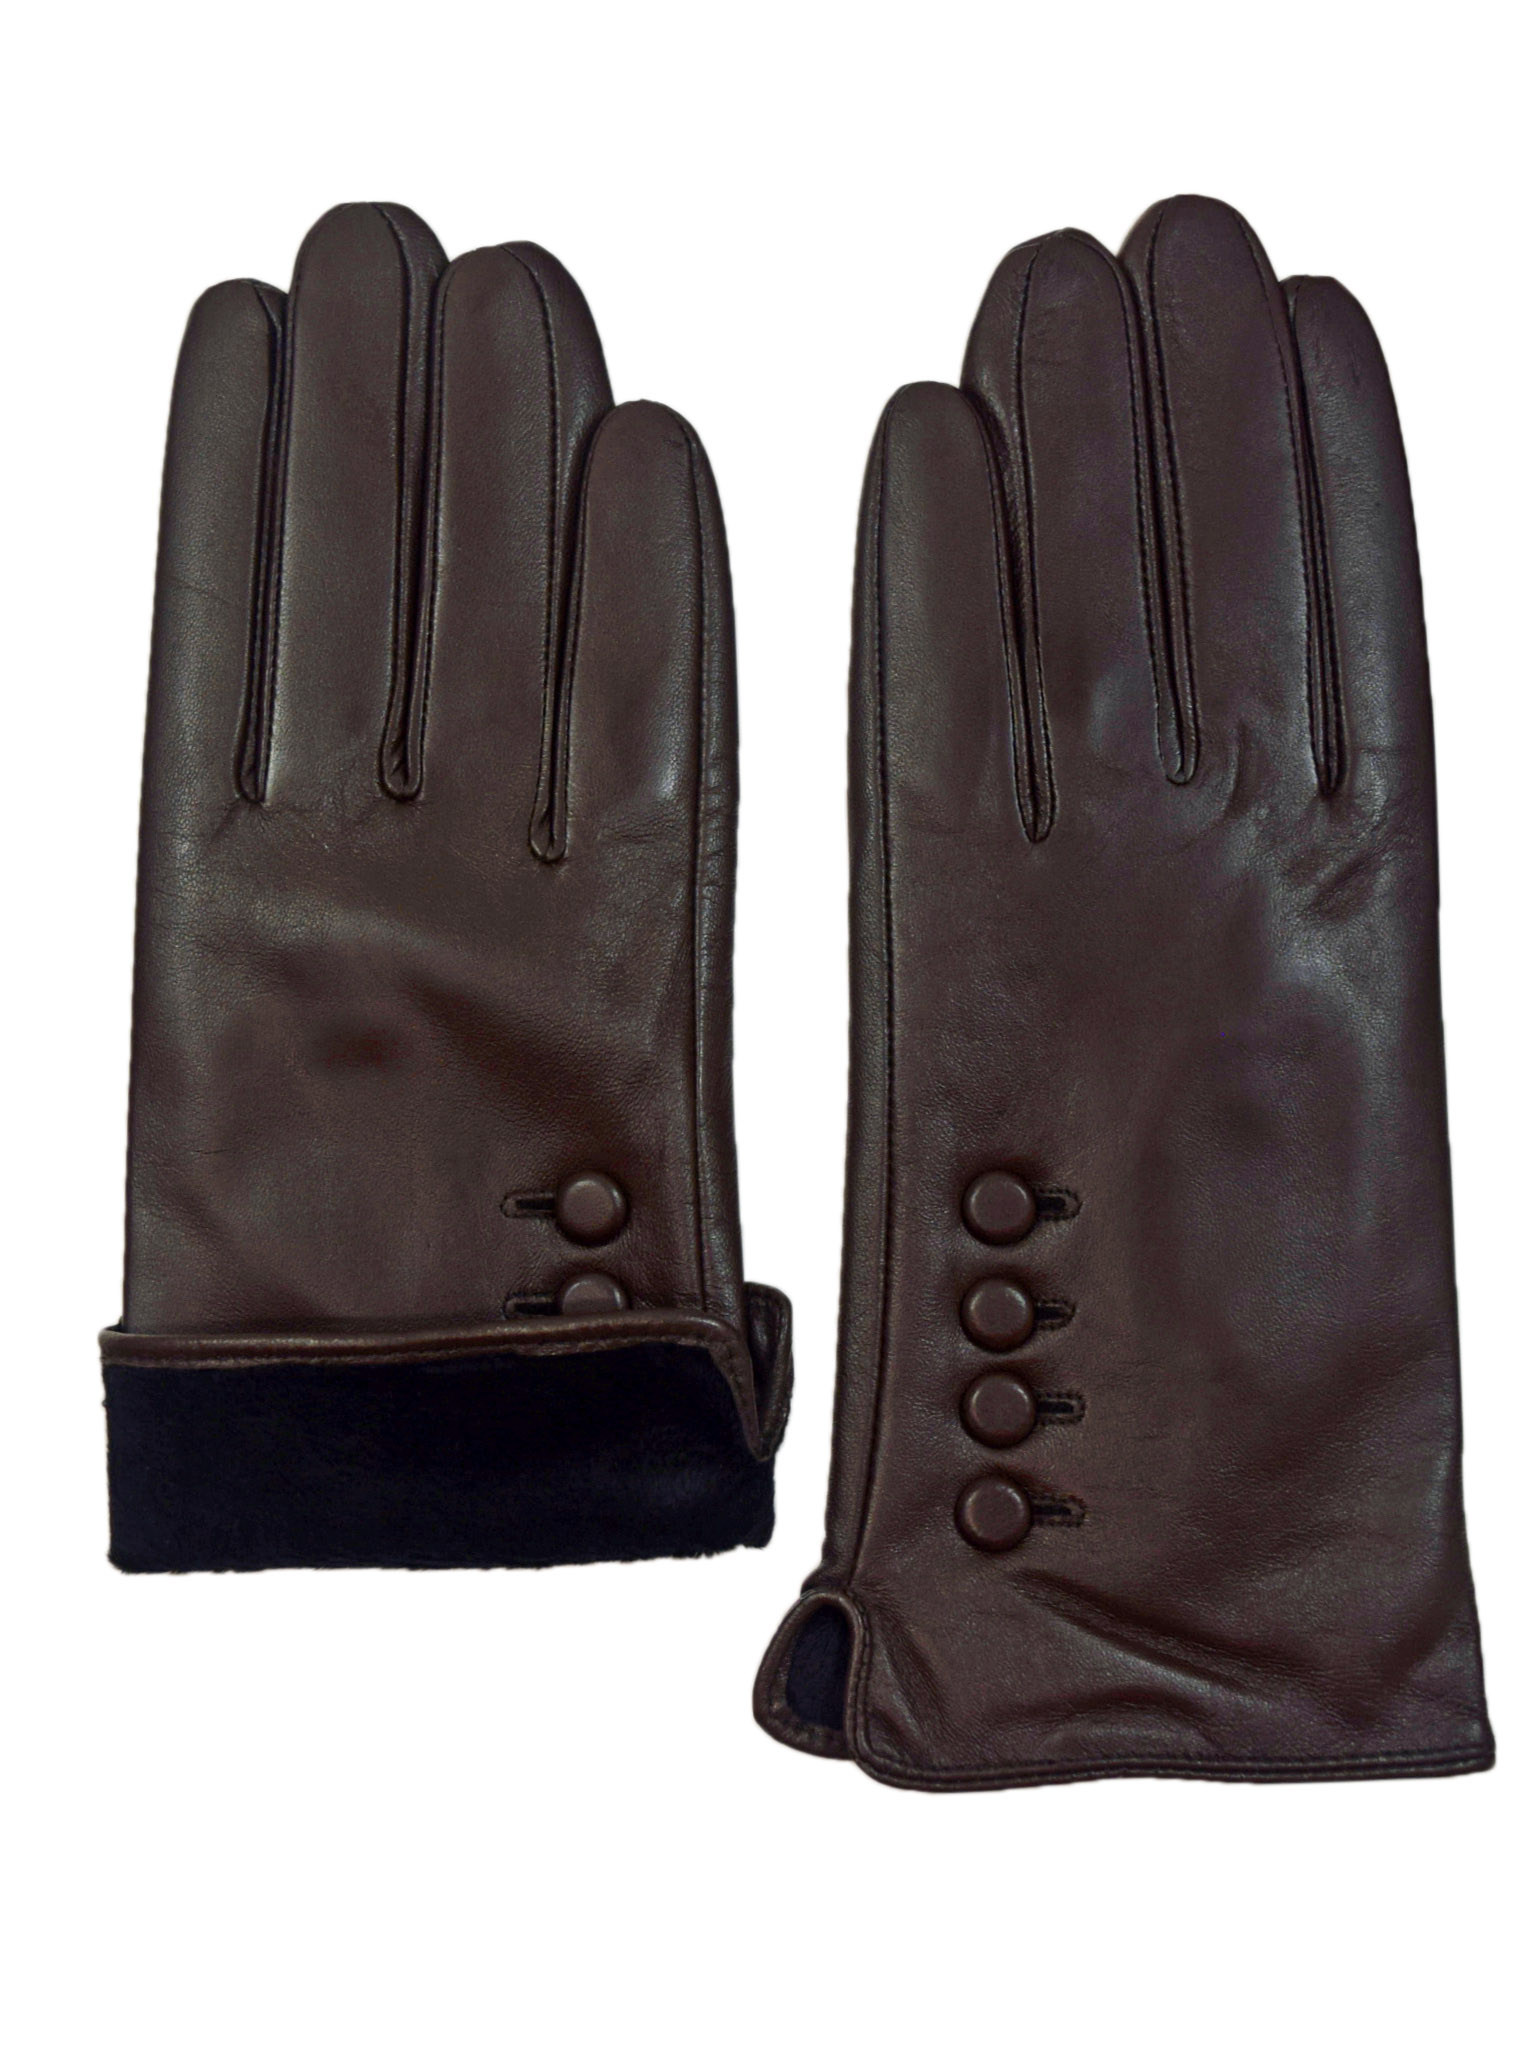 thumbnail 6 - Giromy-Samoni-Womens-Warm-Winter-Plush-Lined-Leather-Driving-Gloves-Brown